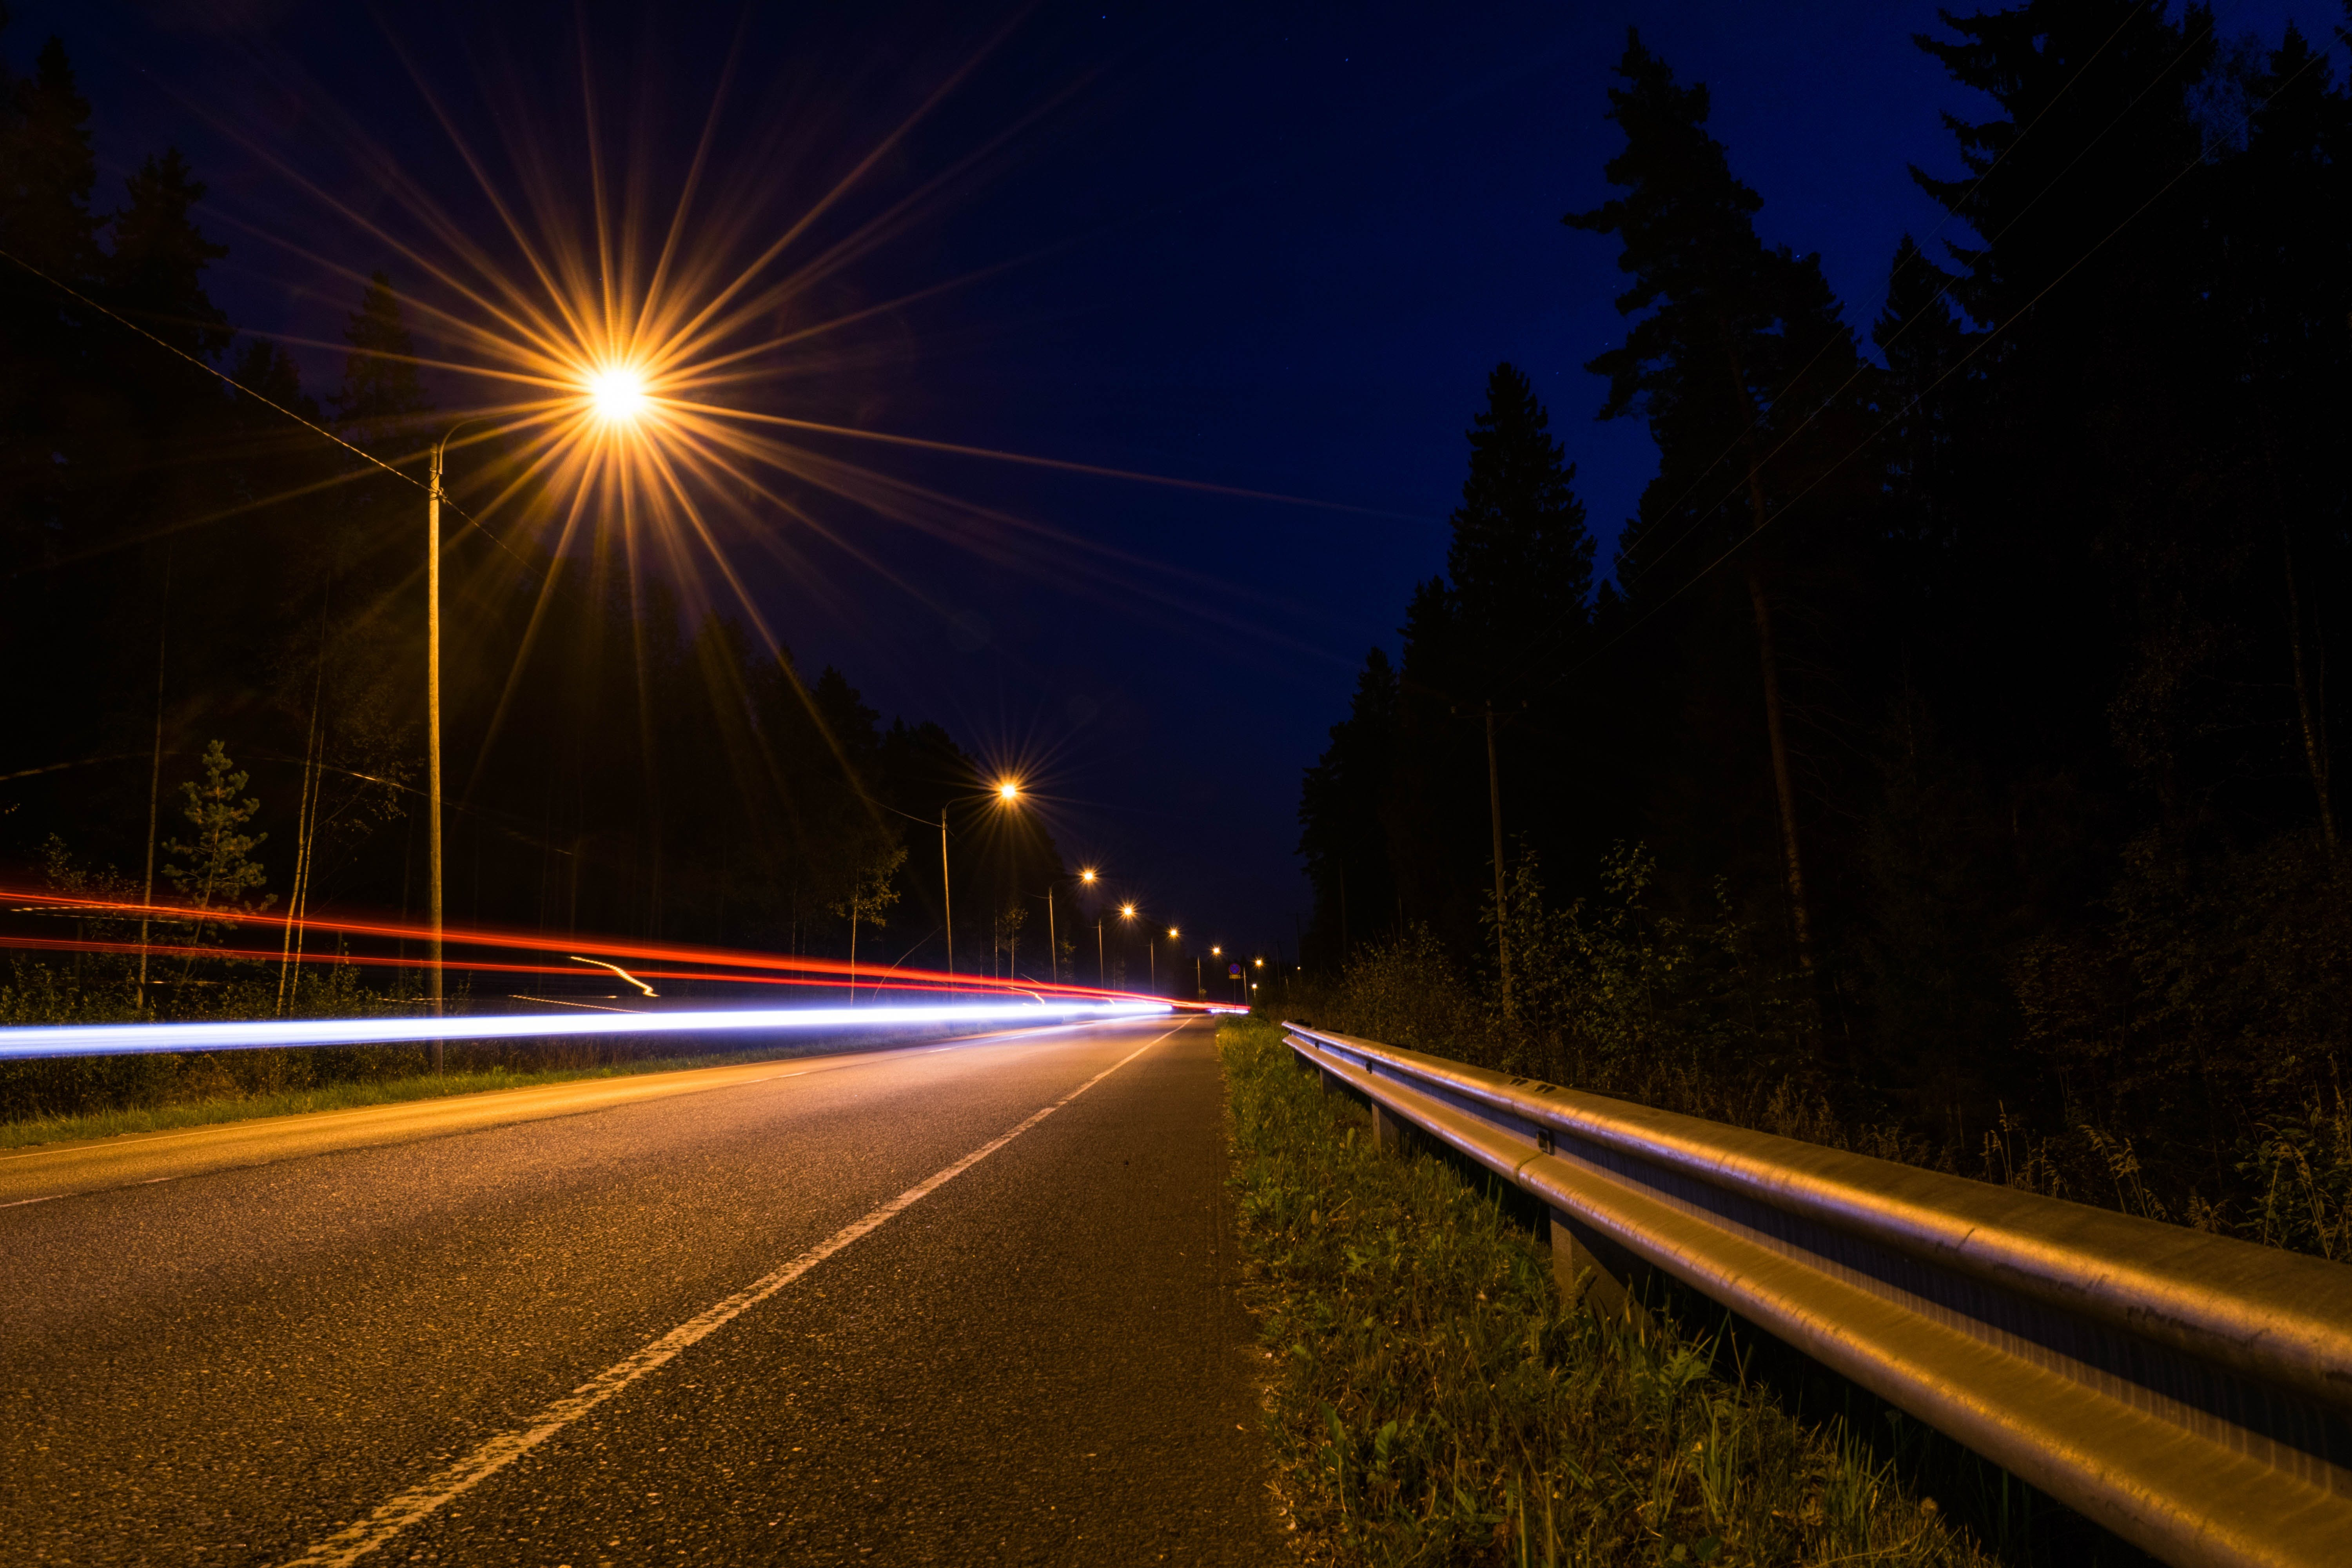 Timelaps Photography of Road at Night